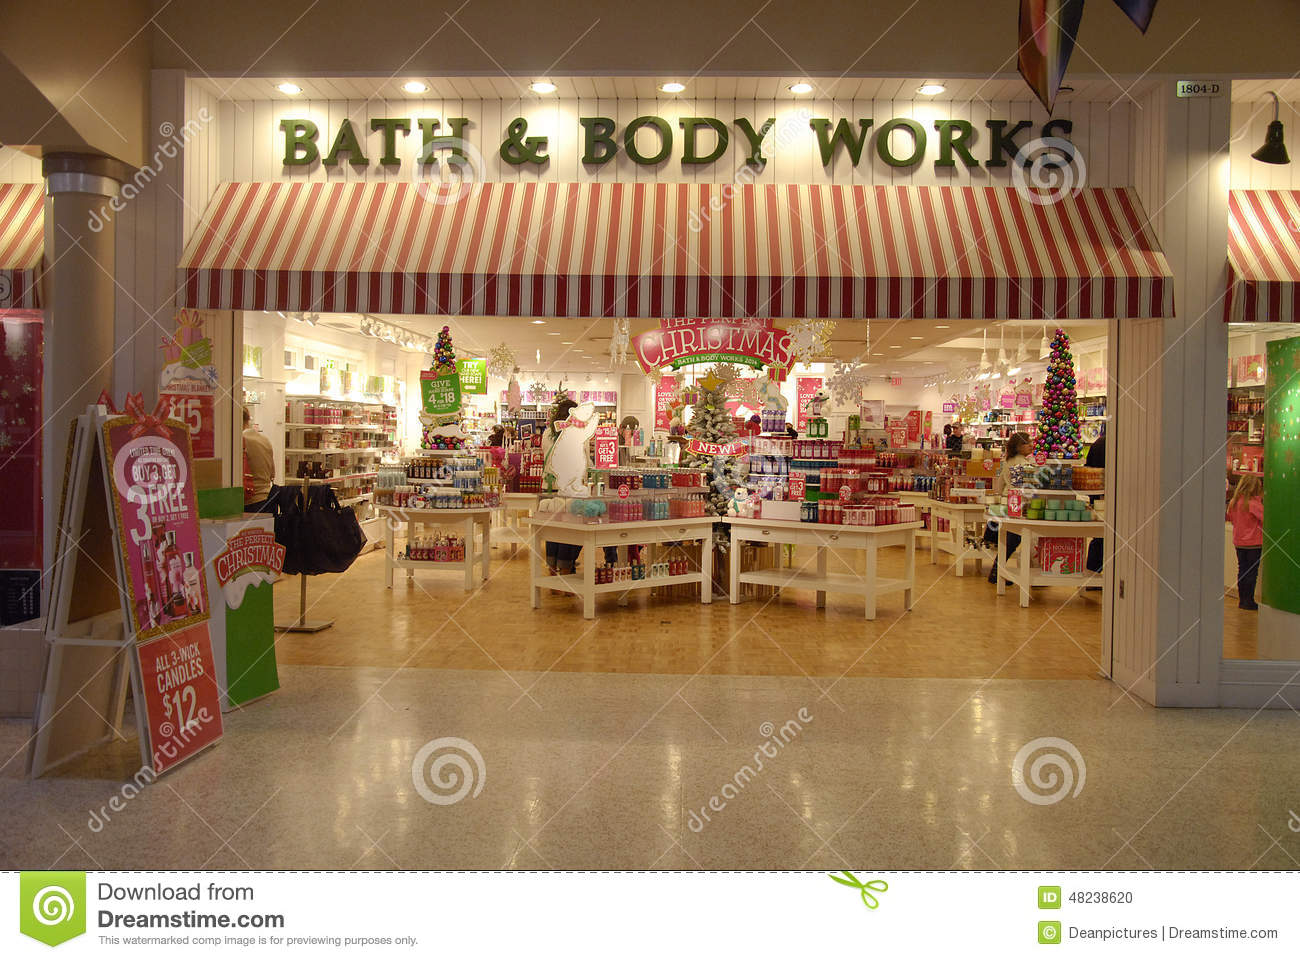 Editorial Stock Photo  Download BATH   BODY WORKS. BATH   BODY WORKS Editorial Image   Image  48238620